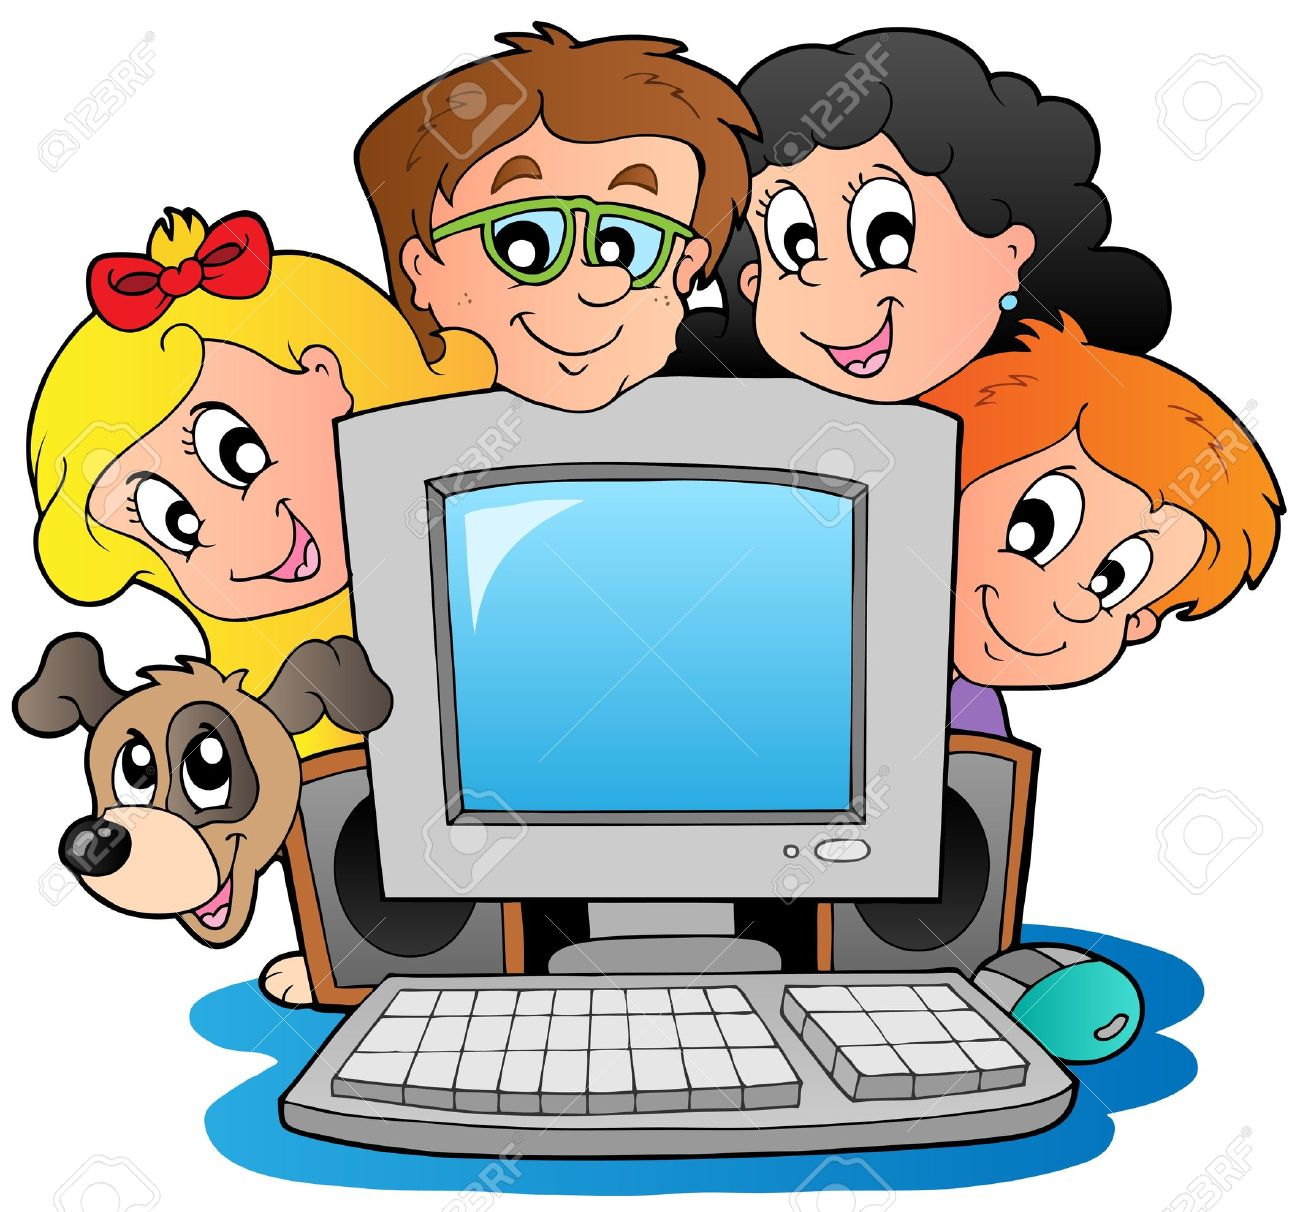 Computer With Cartoon Kids And Dog Royalty Free Cliparts Vectors And Stock Illustration Image 10354188